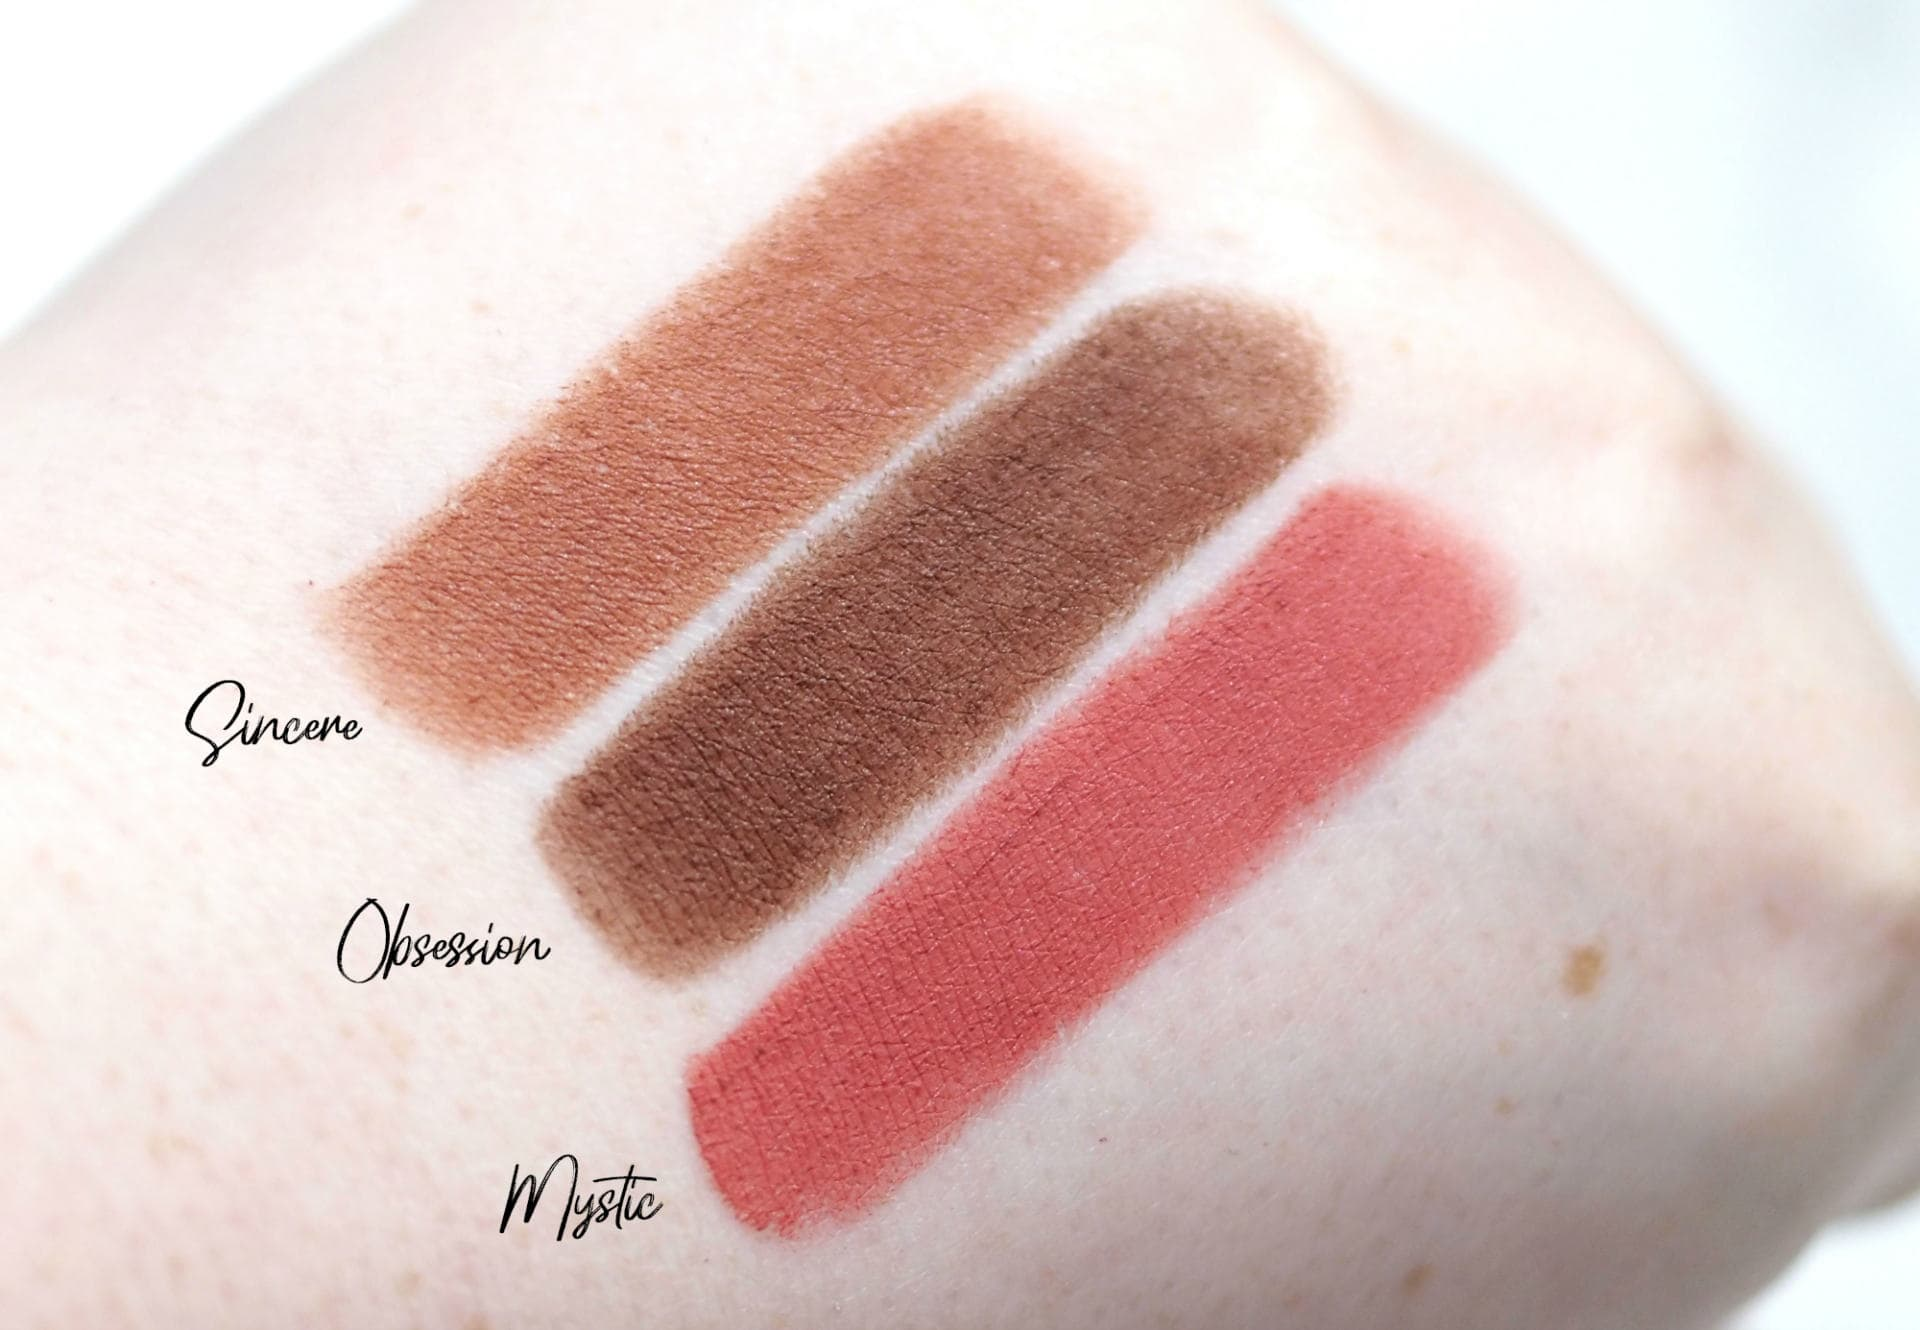 MUA Lip Collection Velvet Matte, Matte, Satin and Velvet Lipsticks Review and Swatches